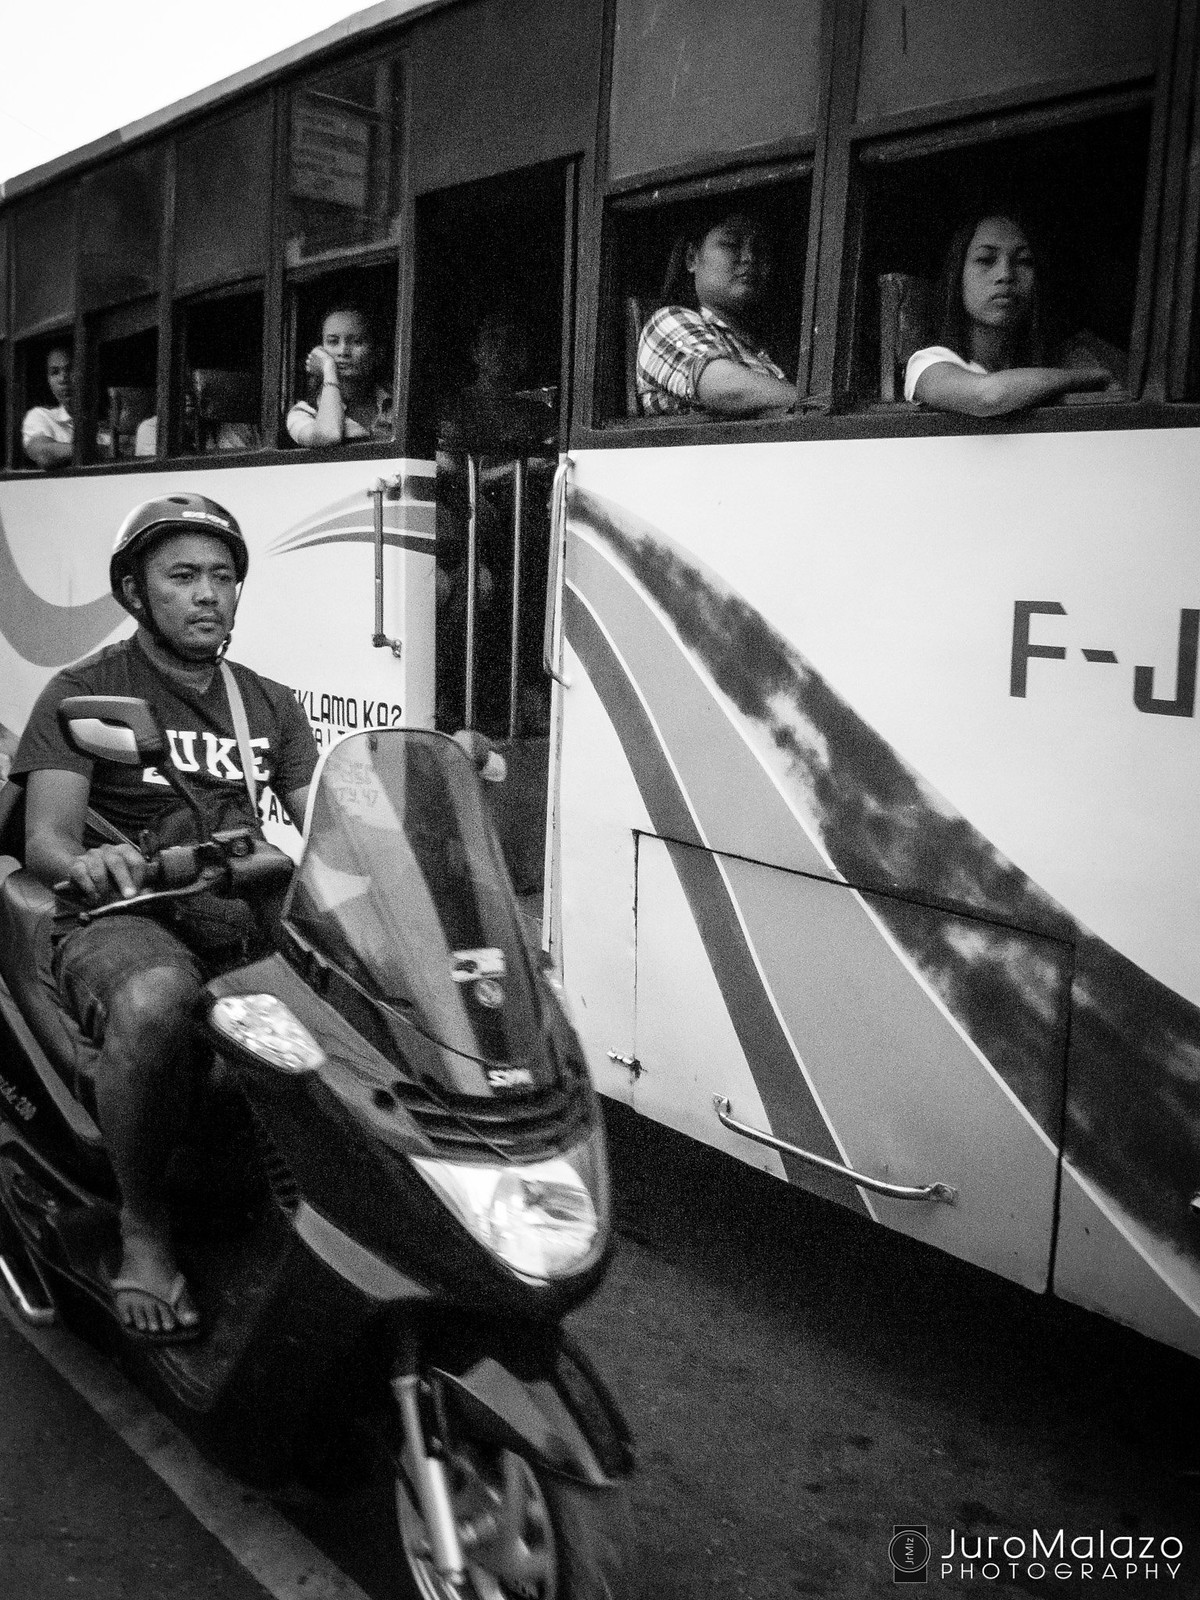 Ride the Waves. (Out on the Streets: Street Photography by Juro Malazo)